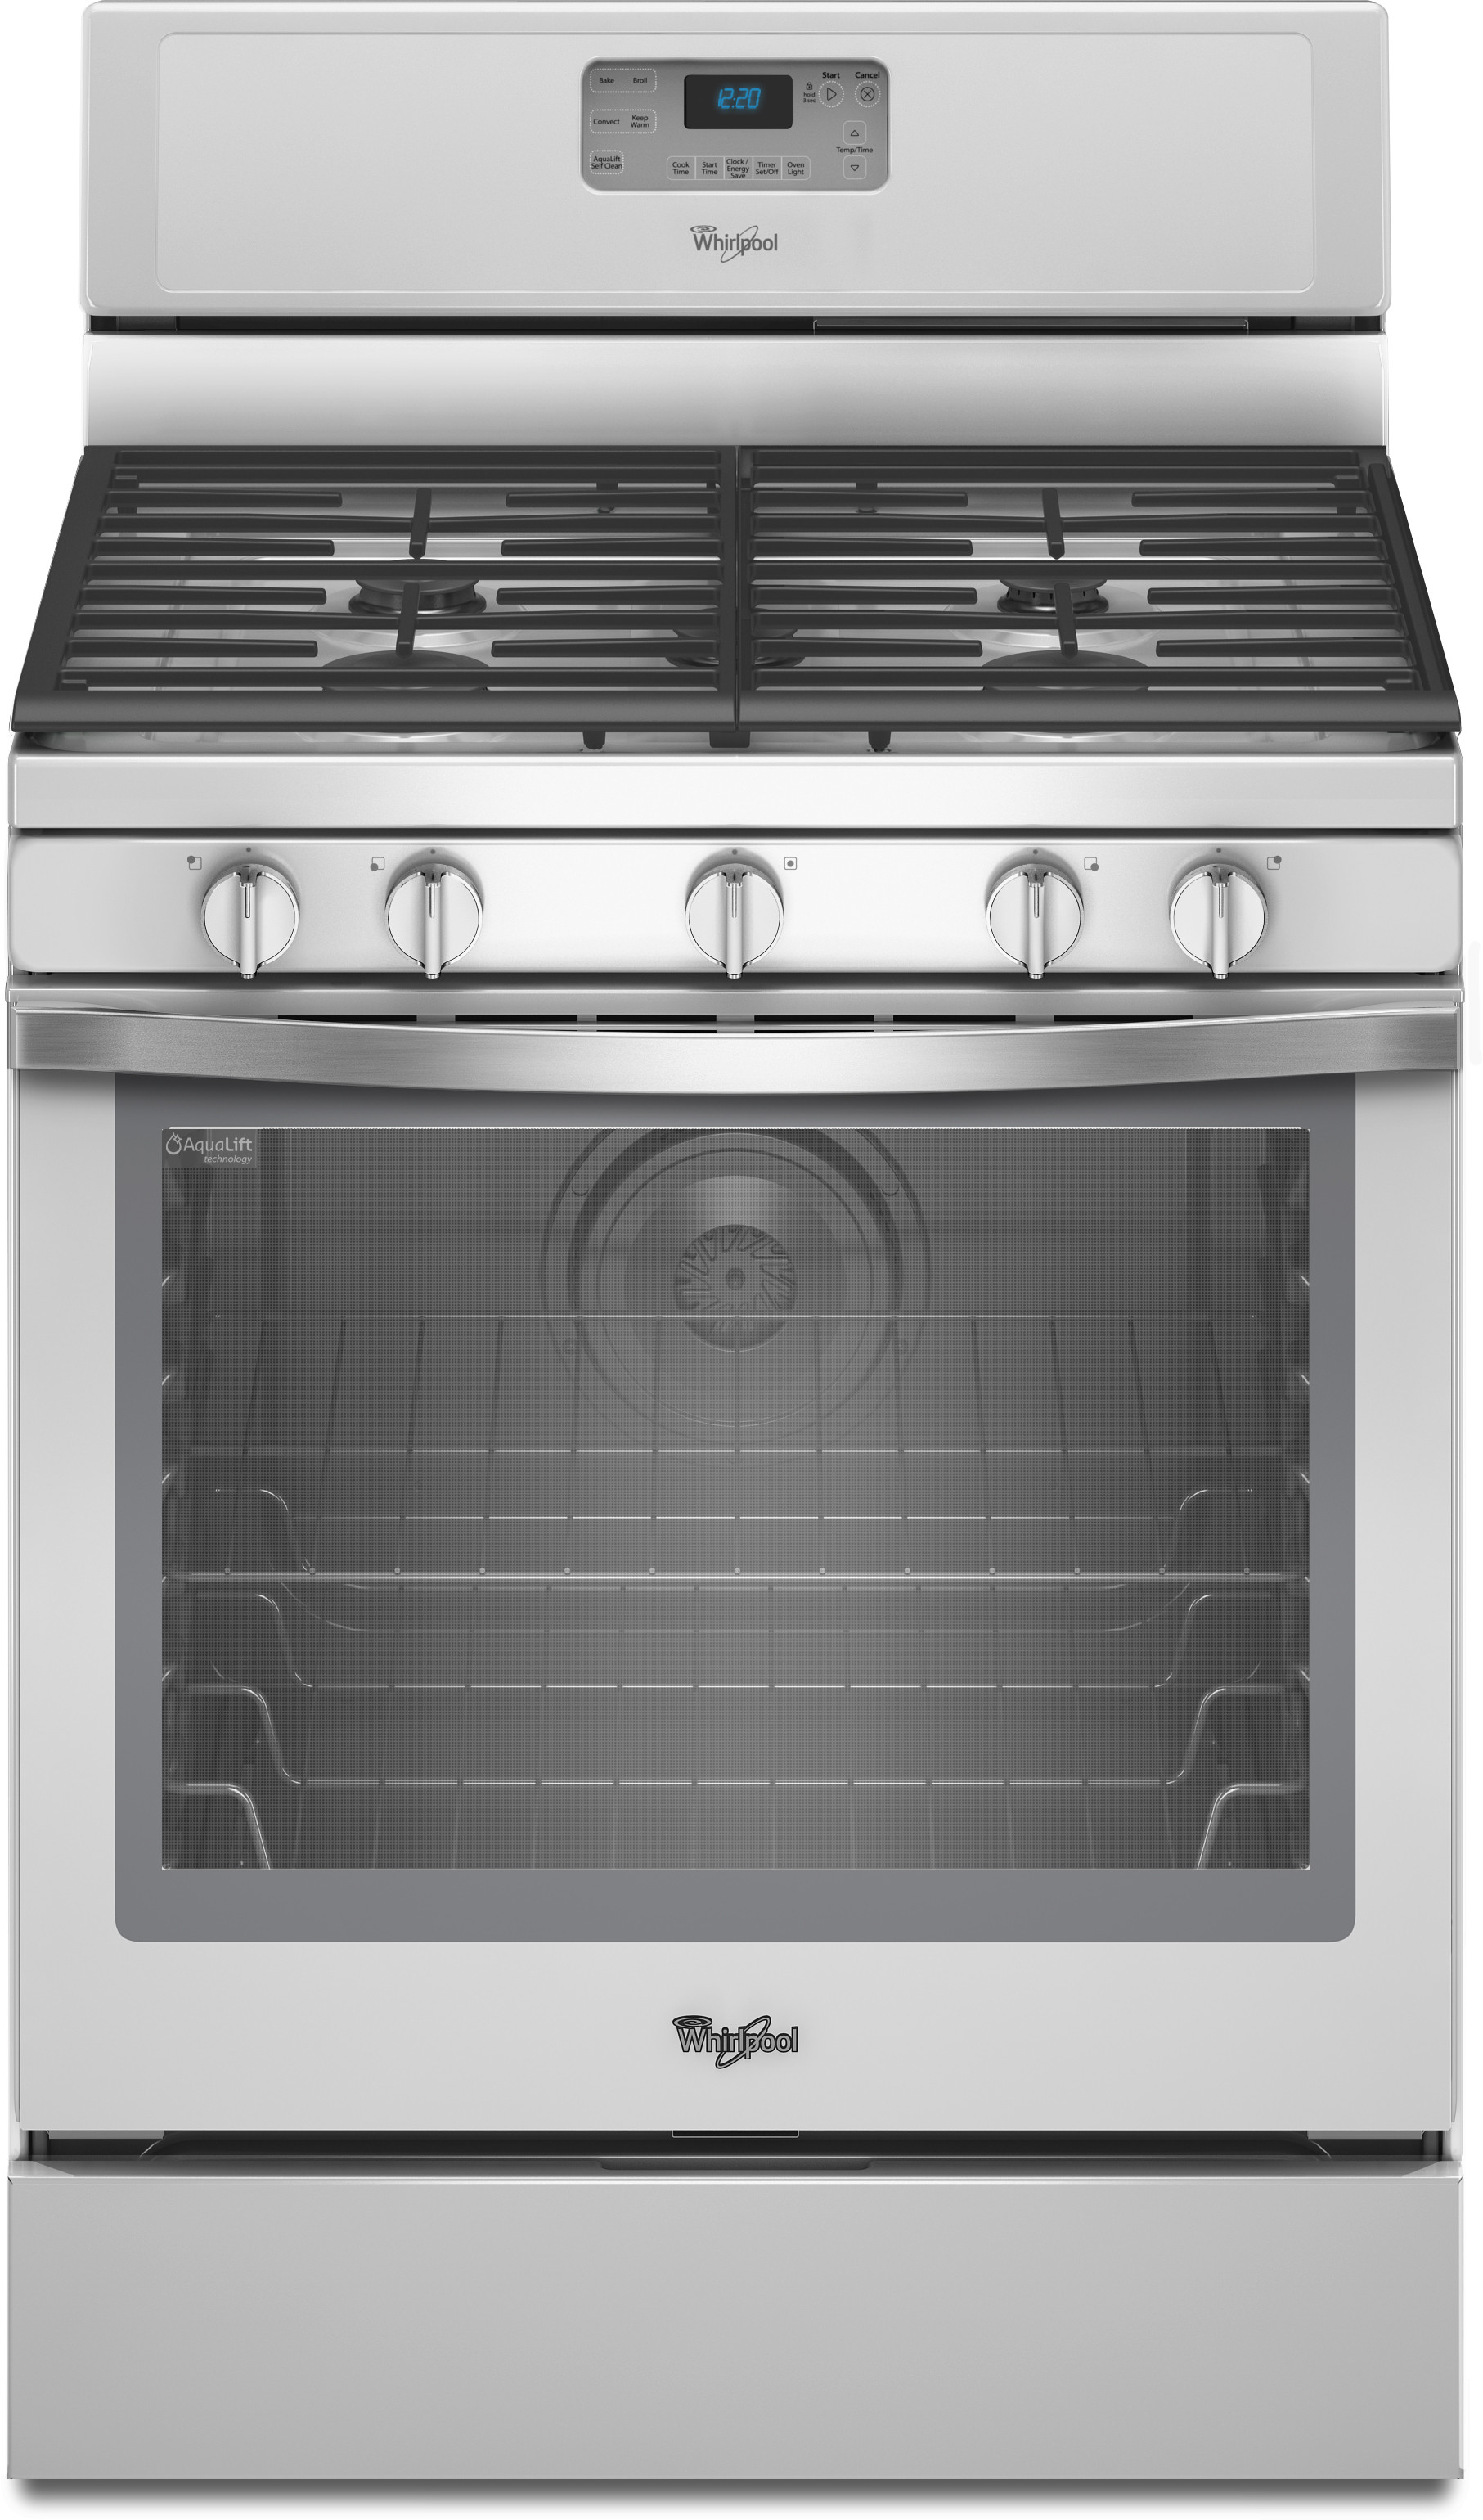 Whirlpool Wfg540h0eh 30 Inch Freestanding Gas Range With Sdheat Burners Aqualift Self Clean Accusimmer Burner Fan Convection Temperature Sensor